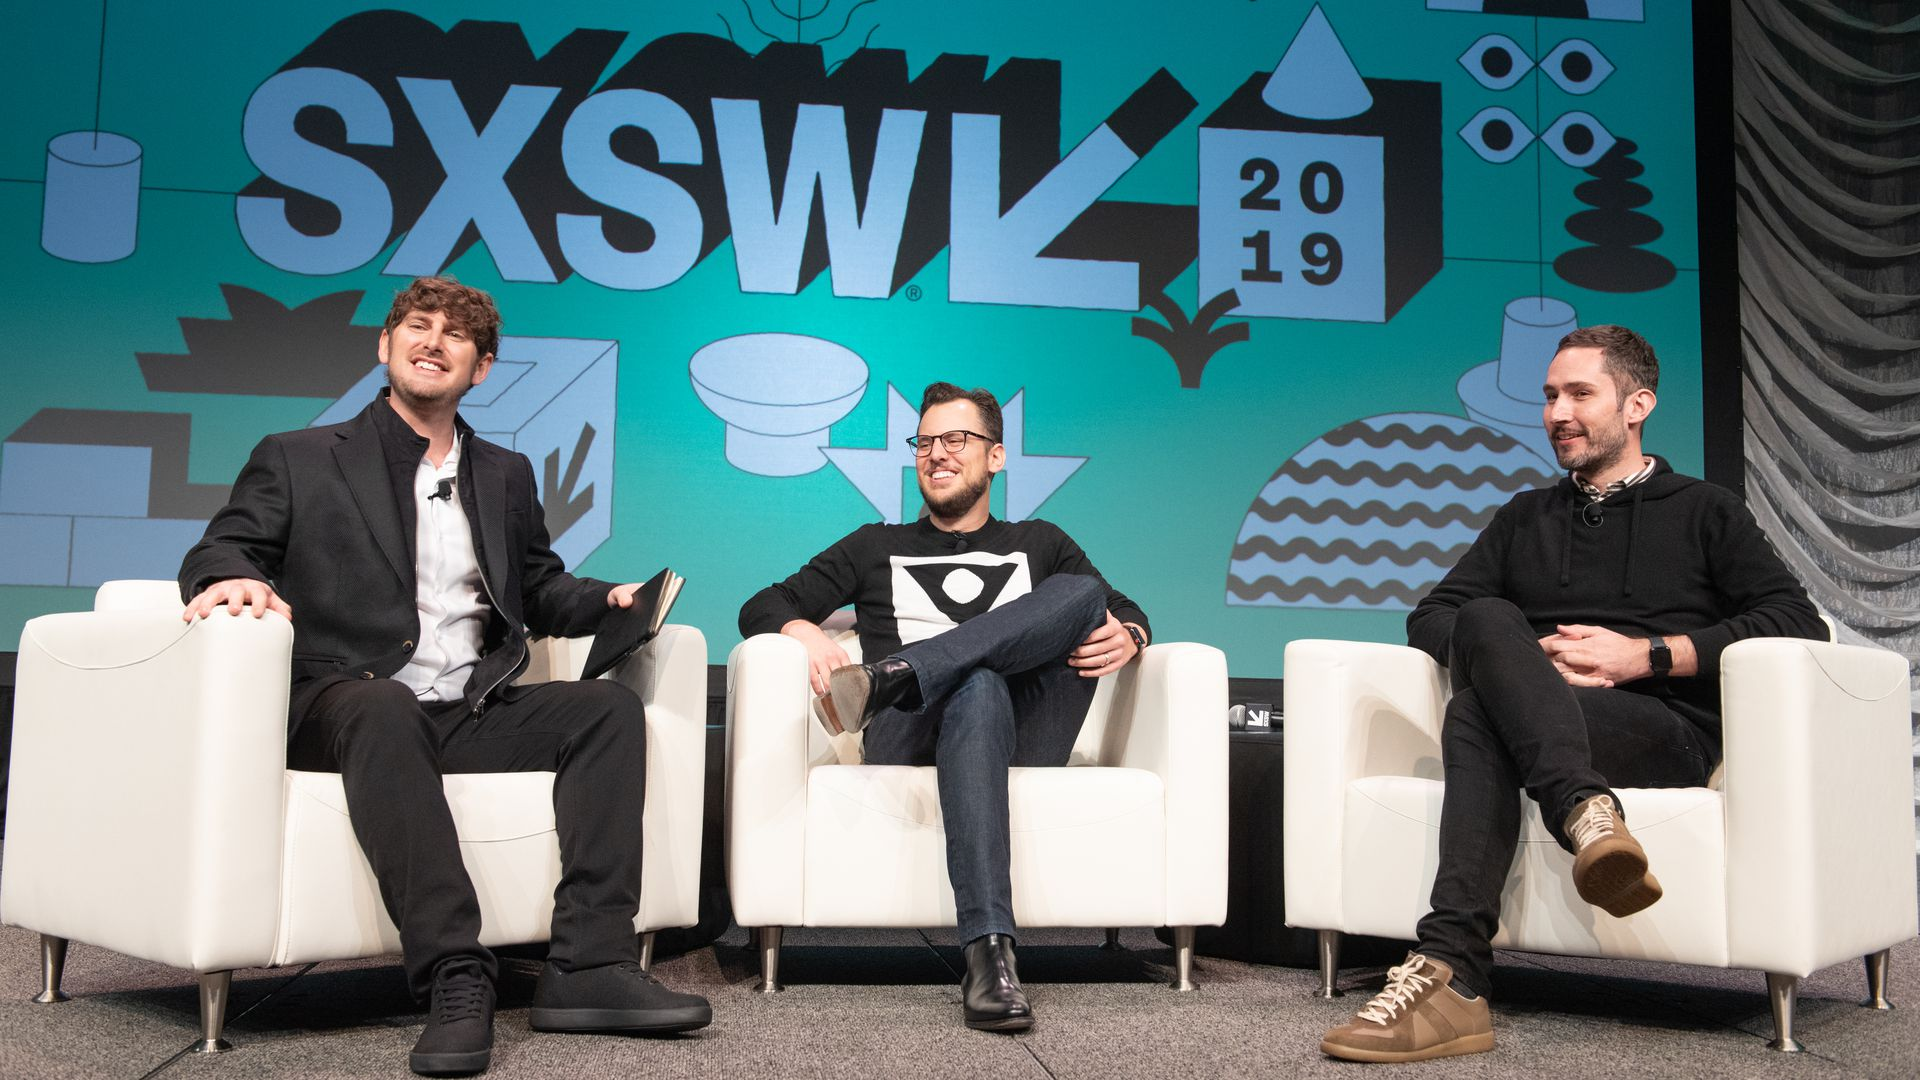 Instagram founders talk leaving Facebook at South by